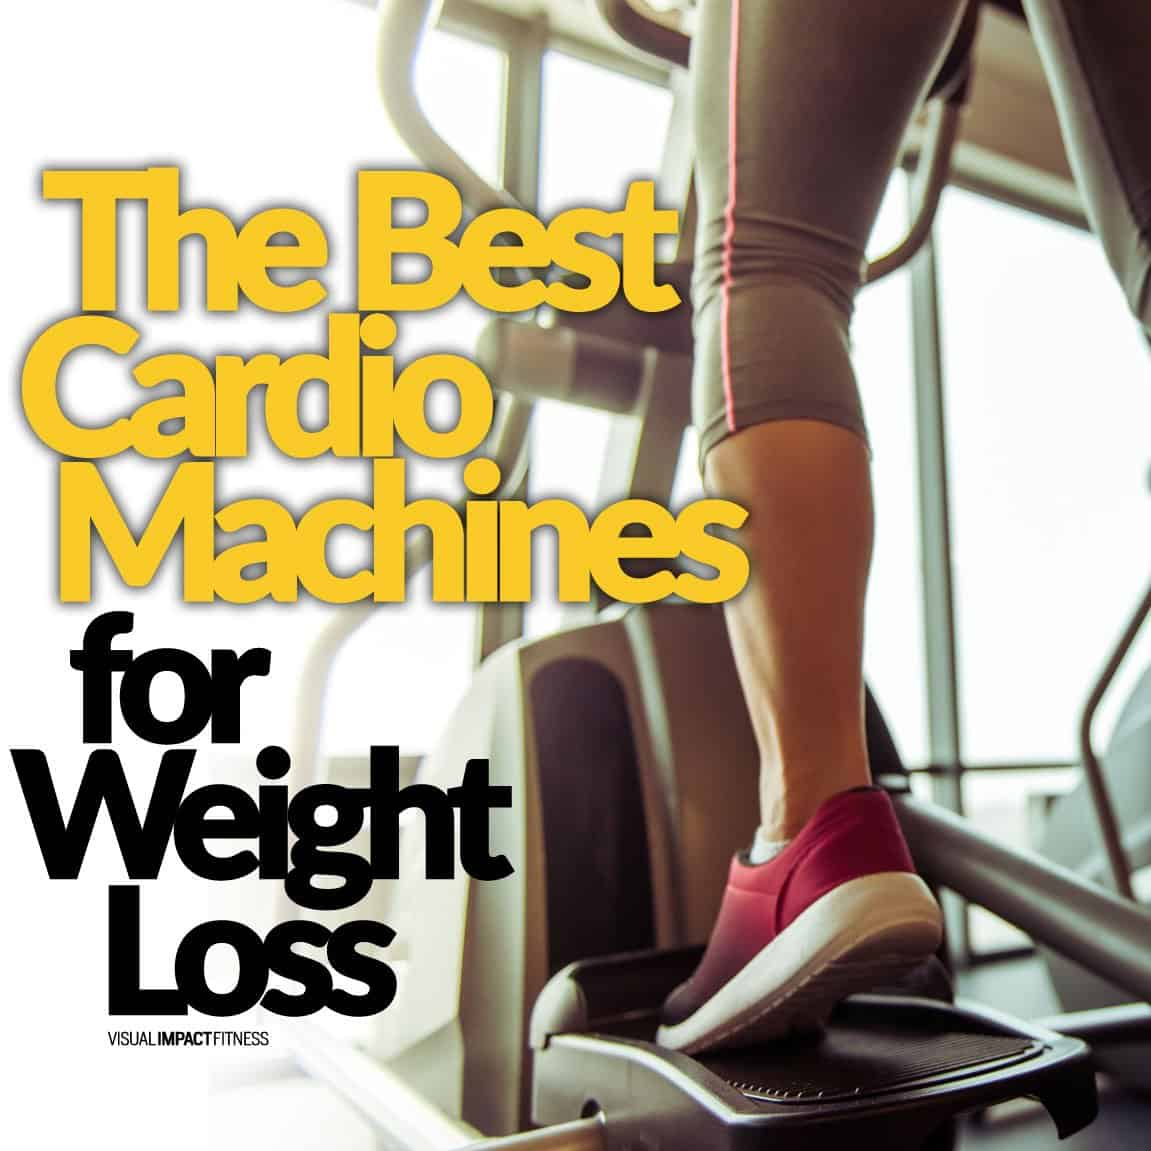 What Are the Best Cardio Machines for Weight Loss?